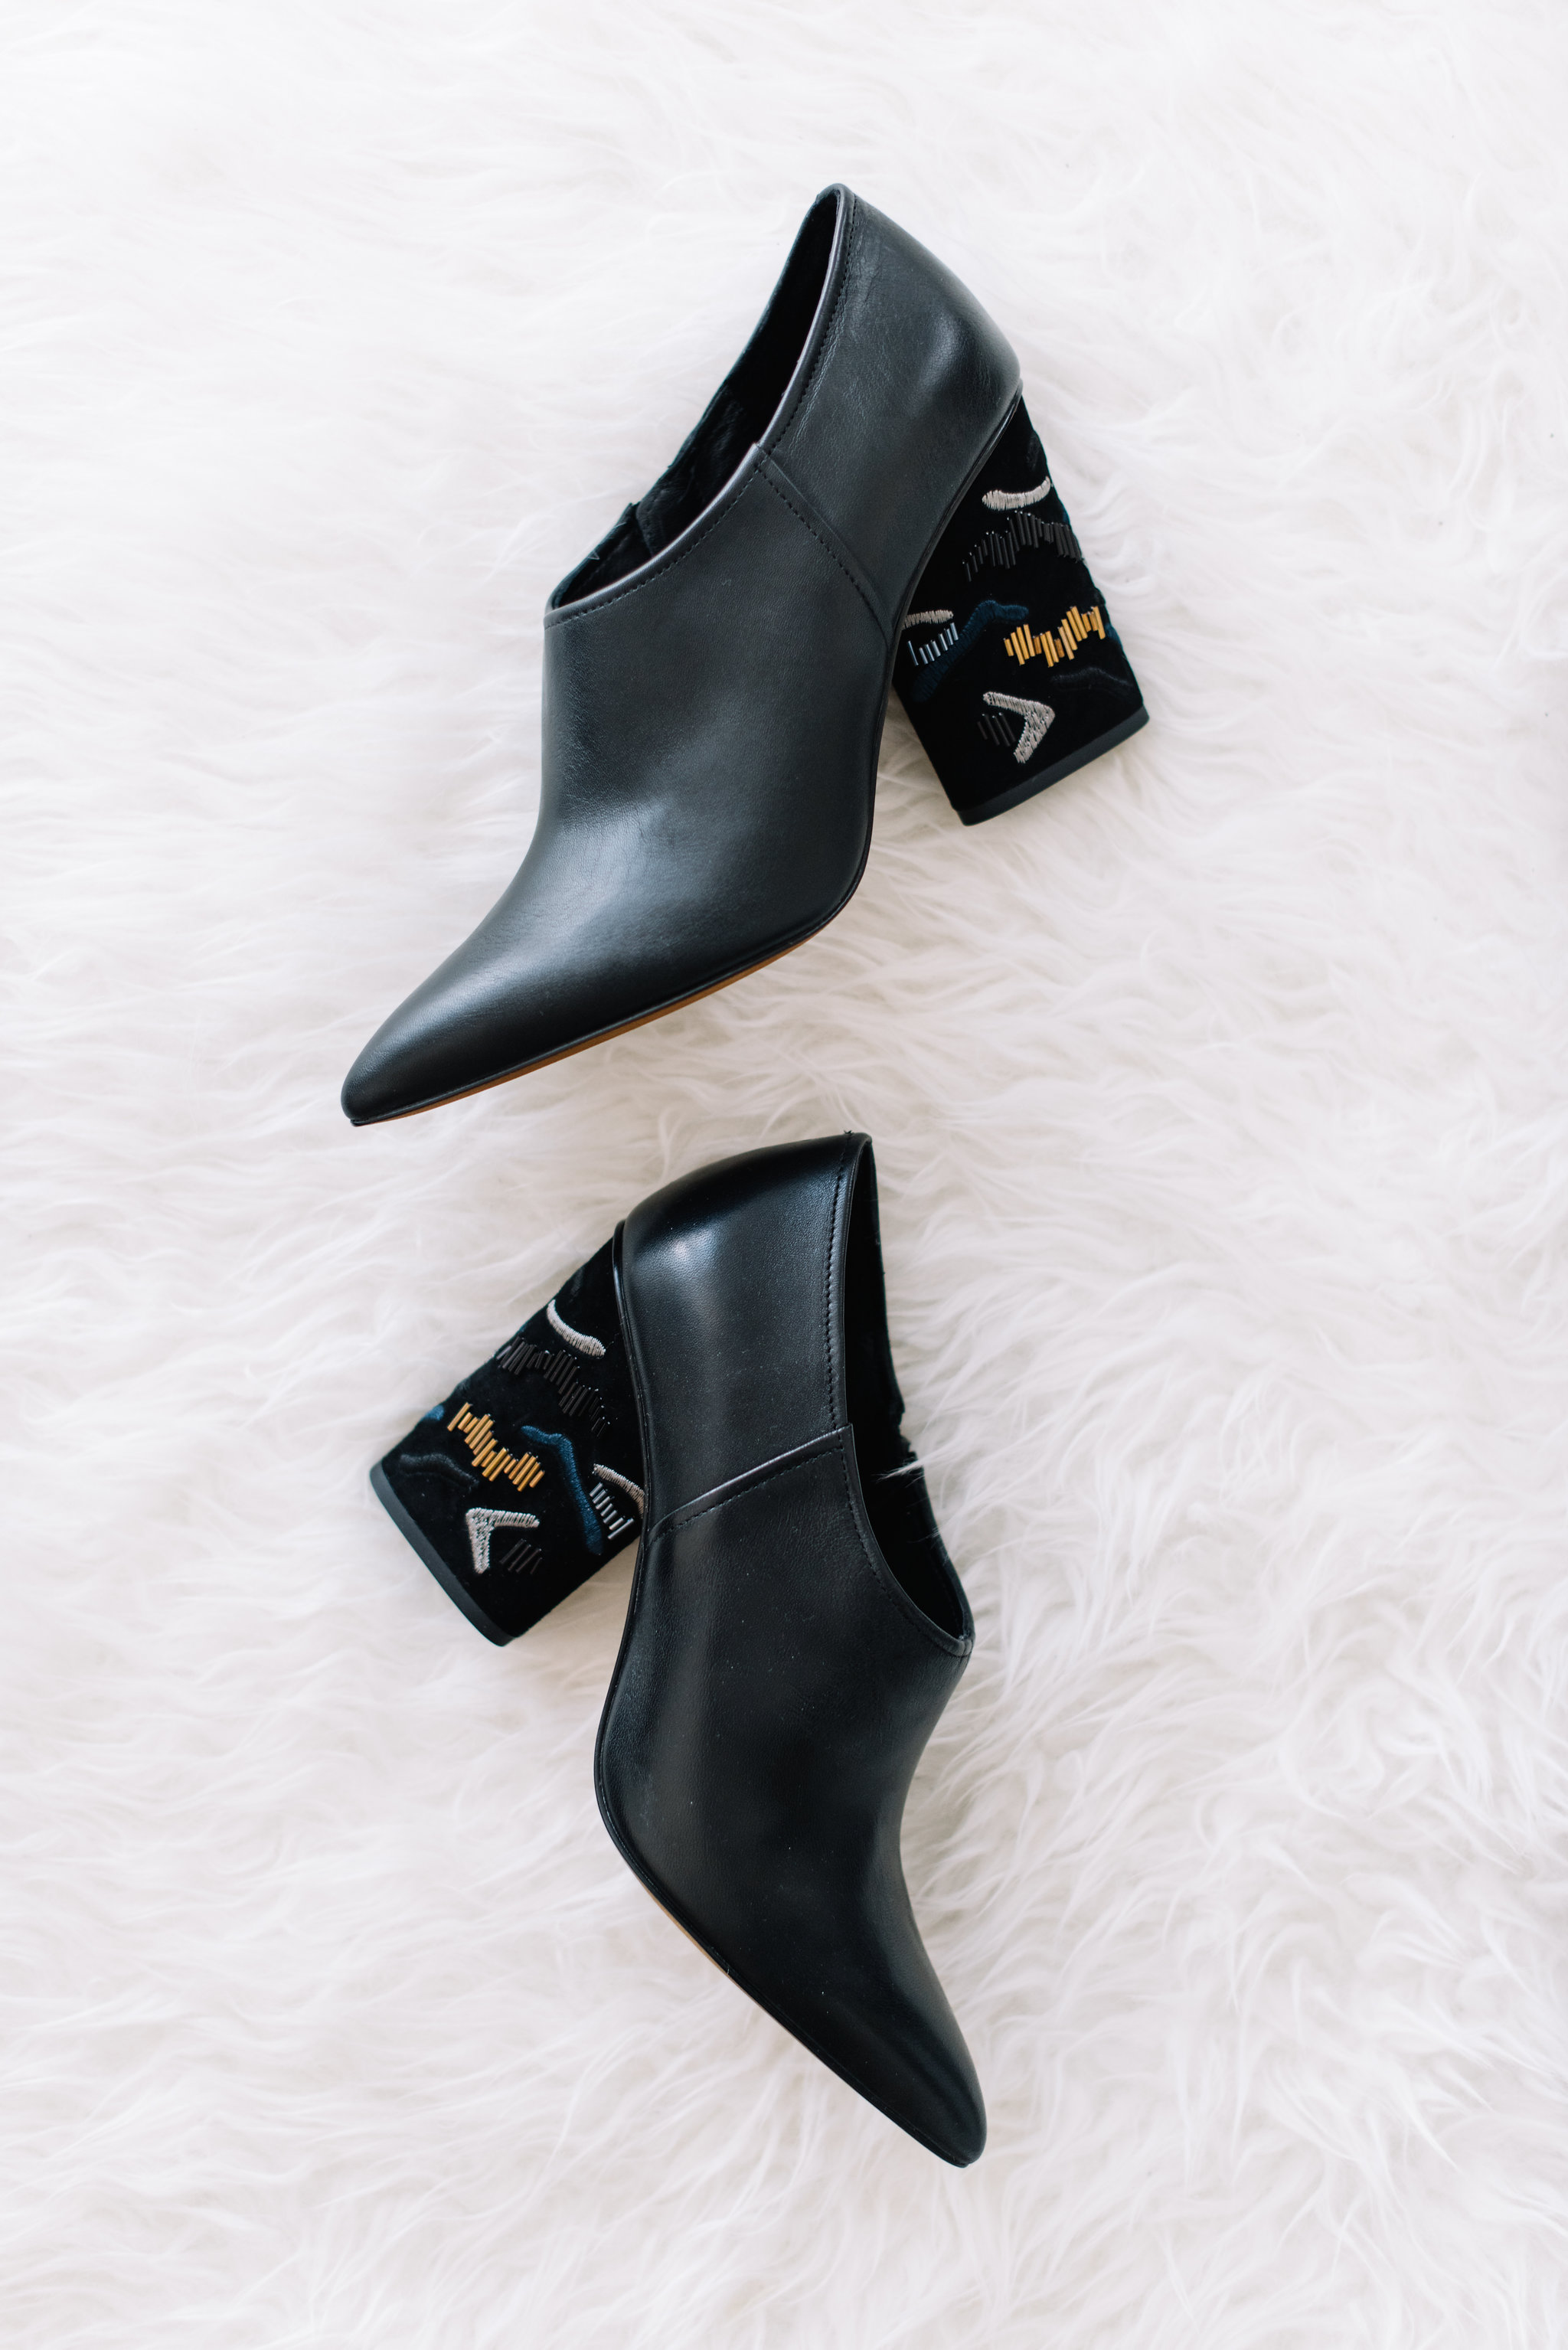 stylish black booties